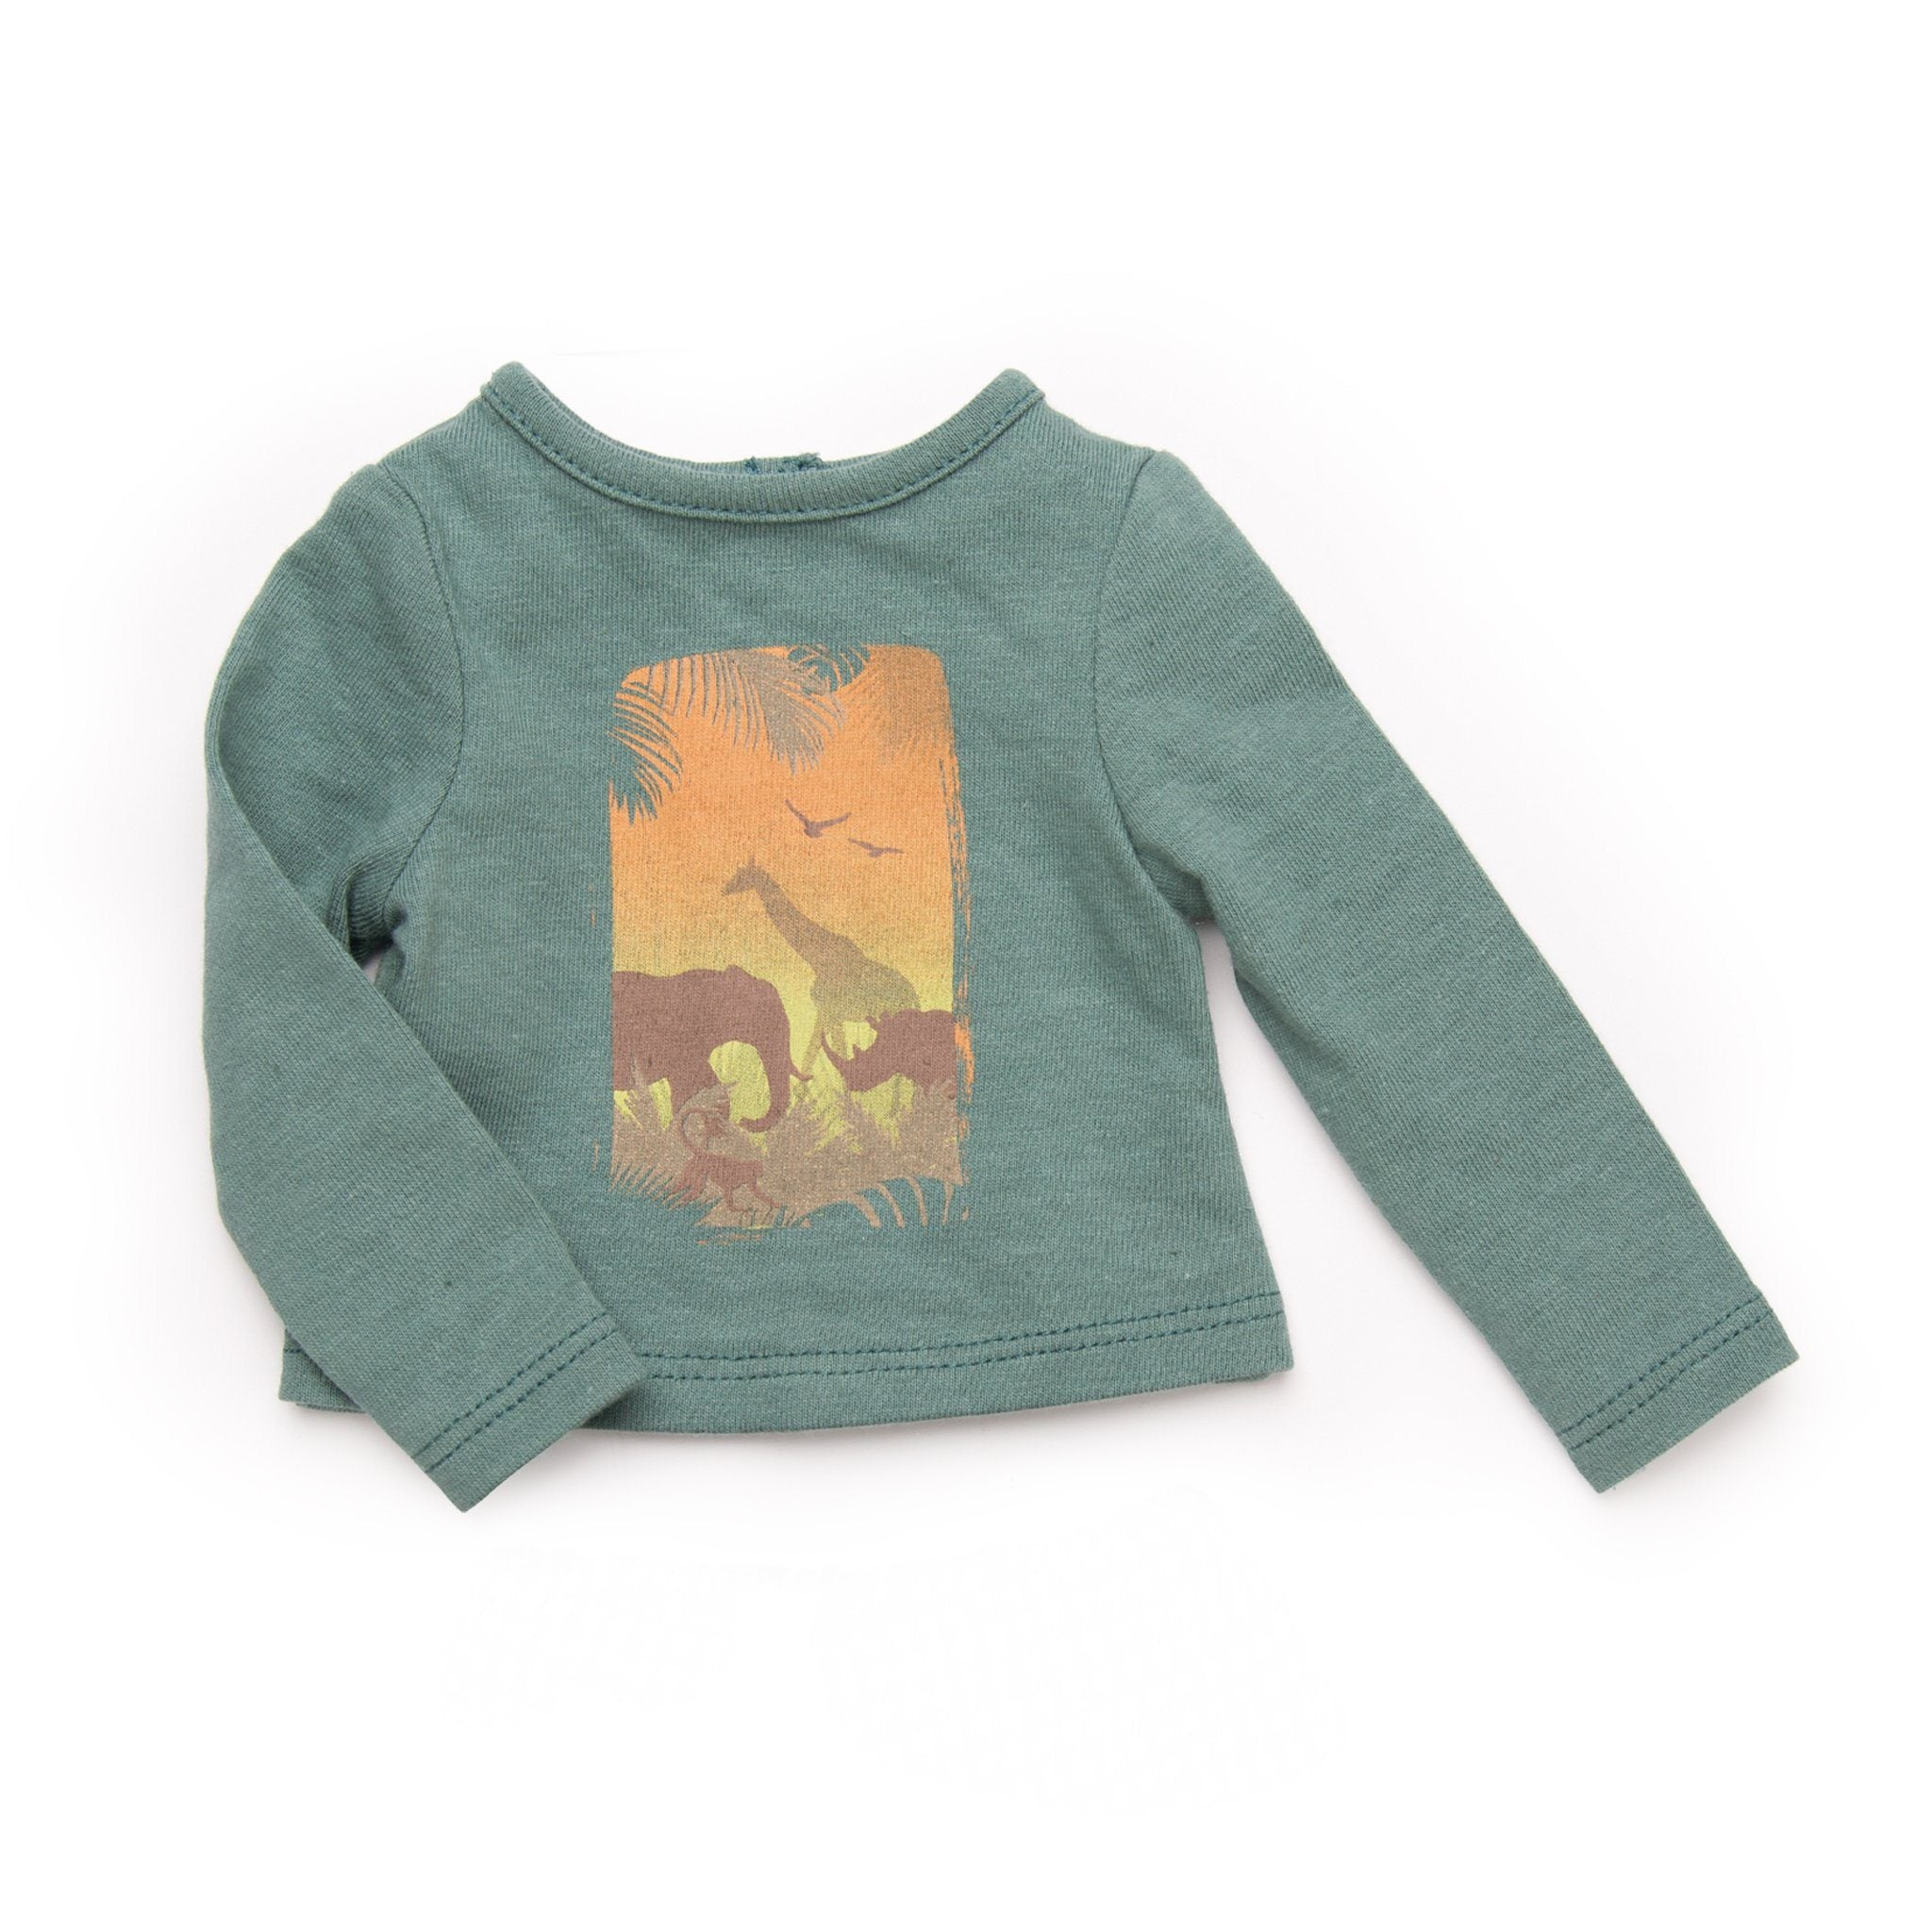 Urban Jungle long sleeve green shirt with jungle graphic fits all 18 inch dolls.